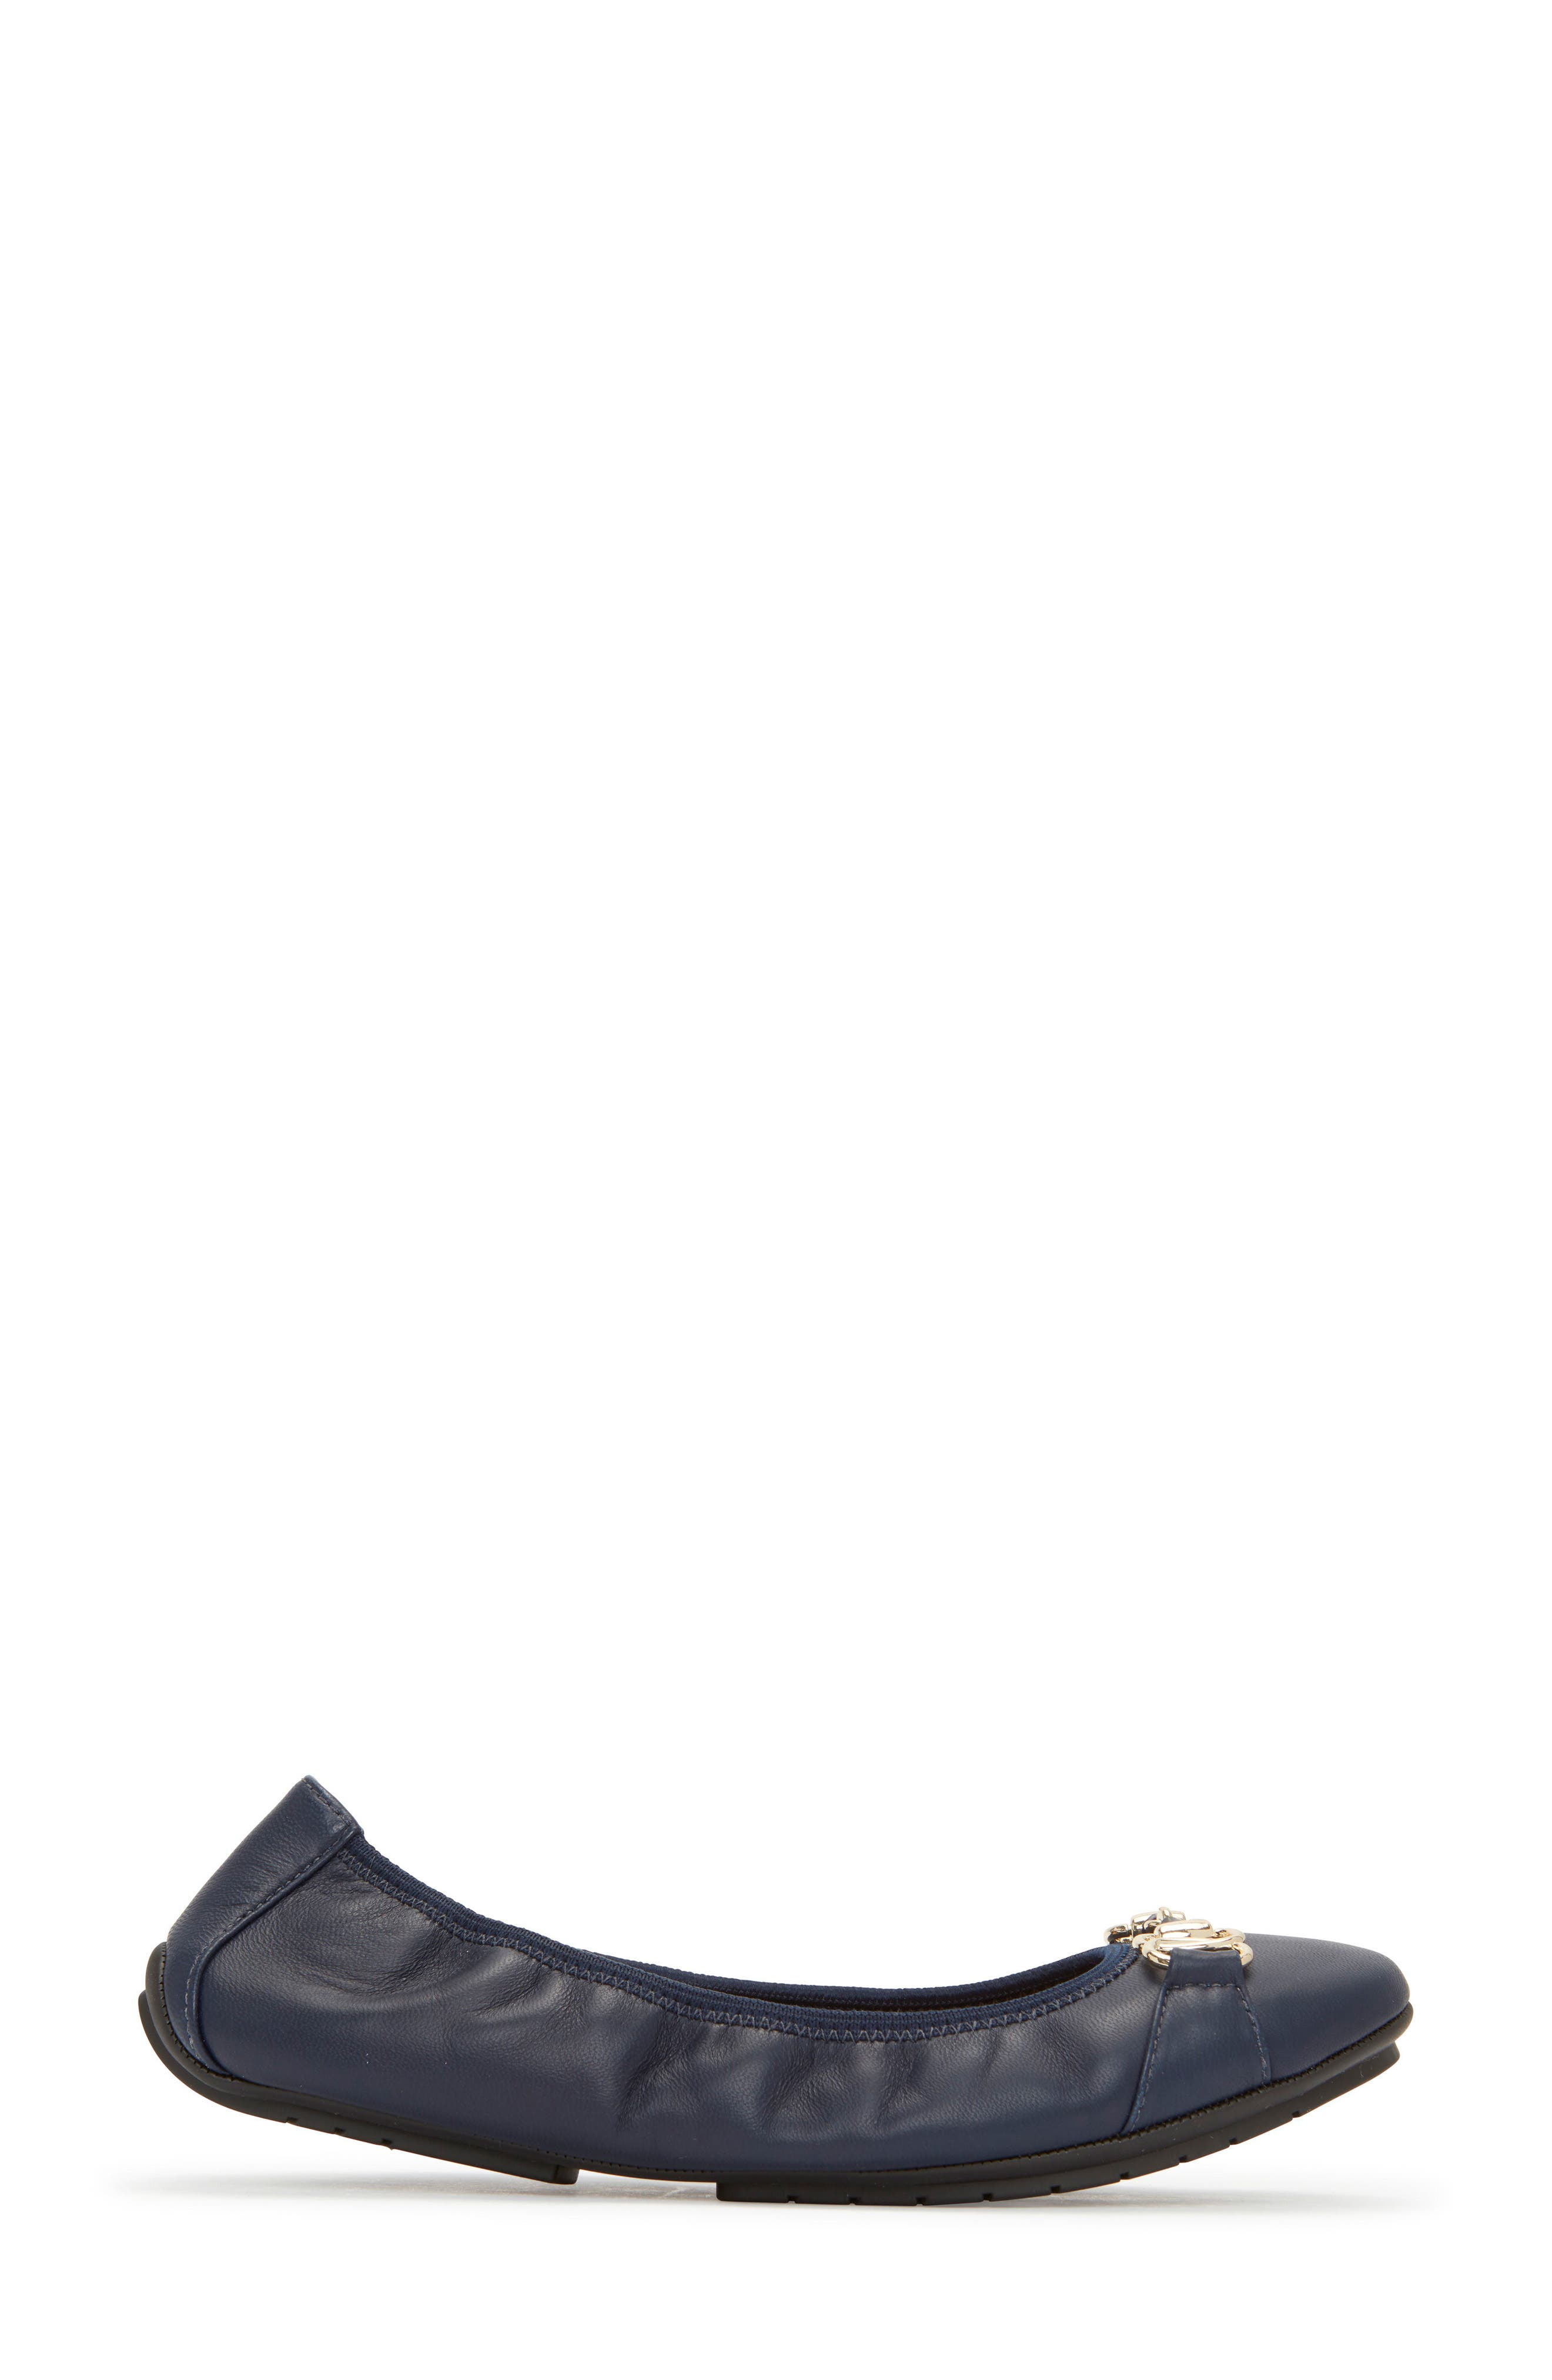 Olympia Skimmer Flat,                             Alternate thumbnail 6, color,                             Navy Leather